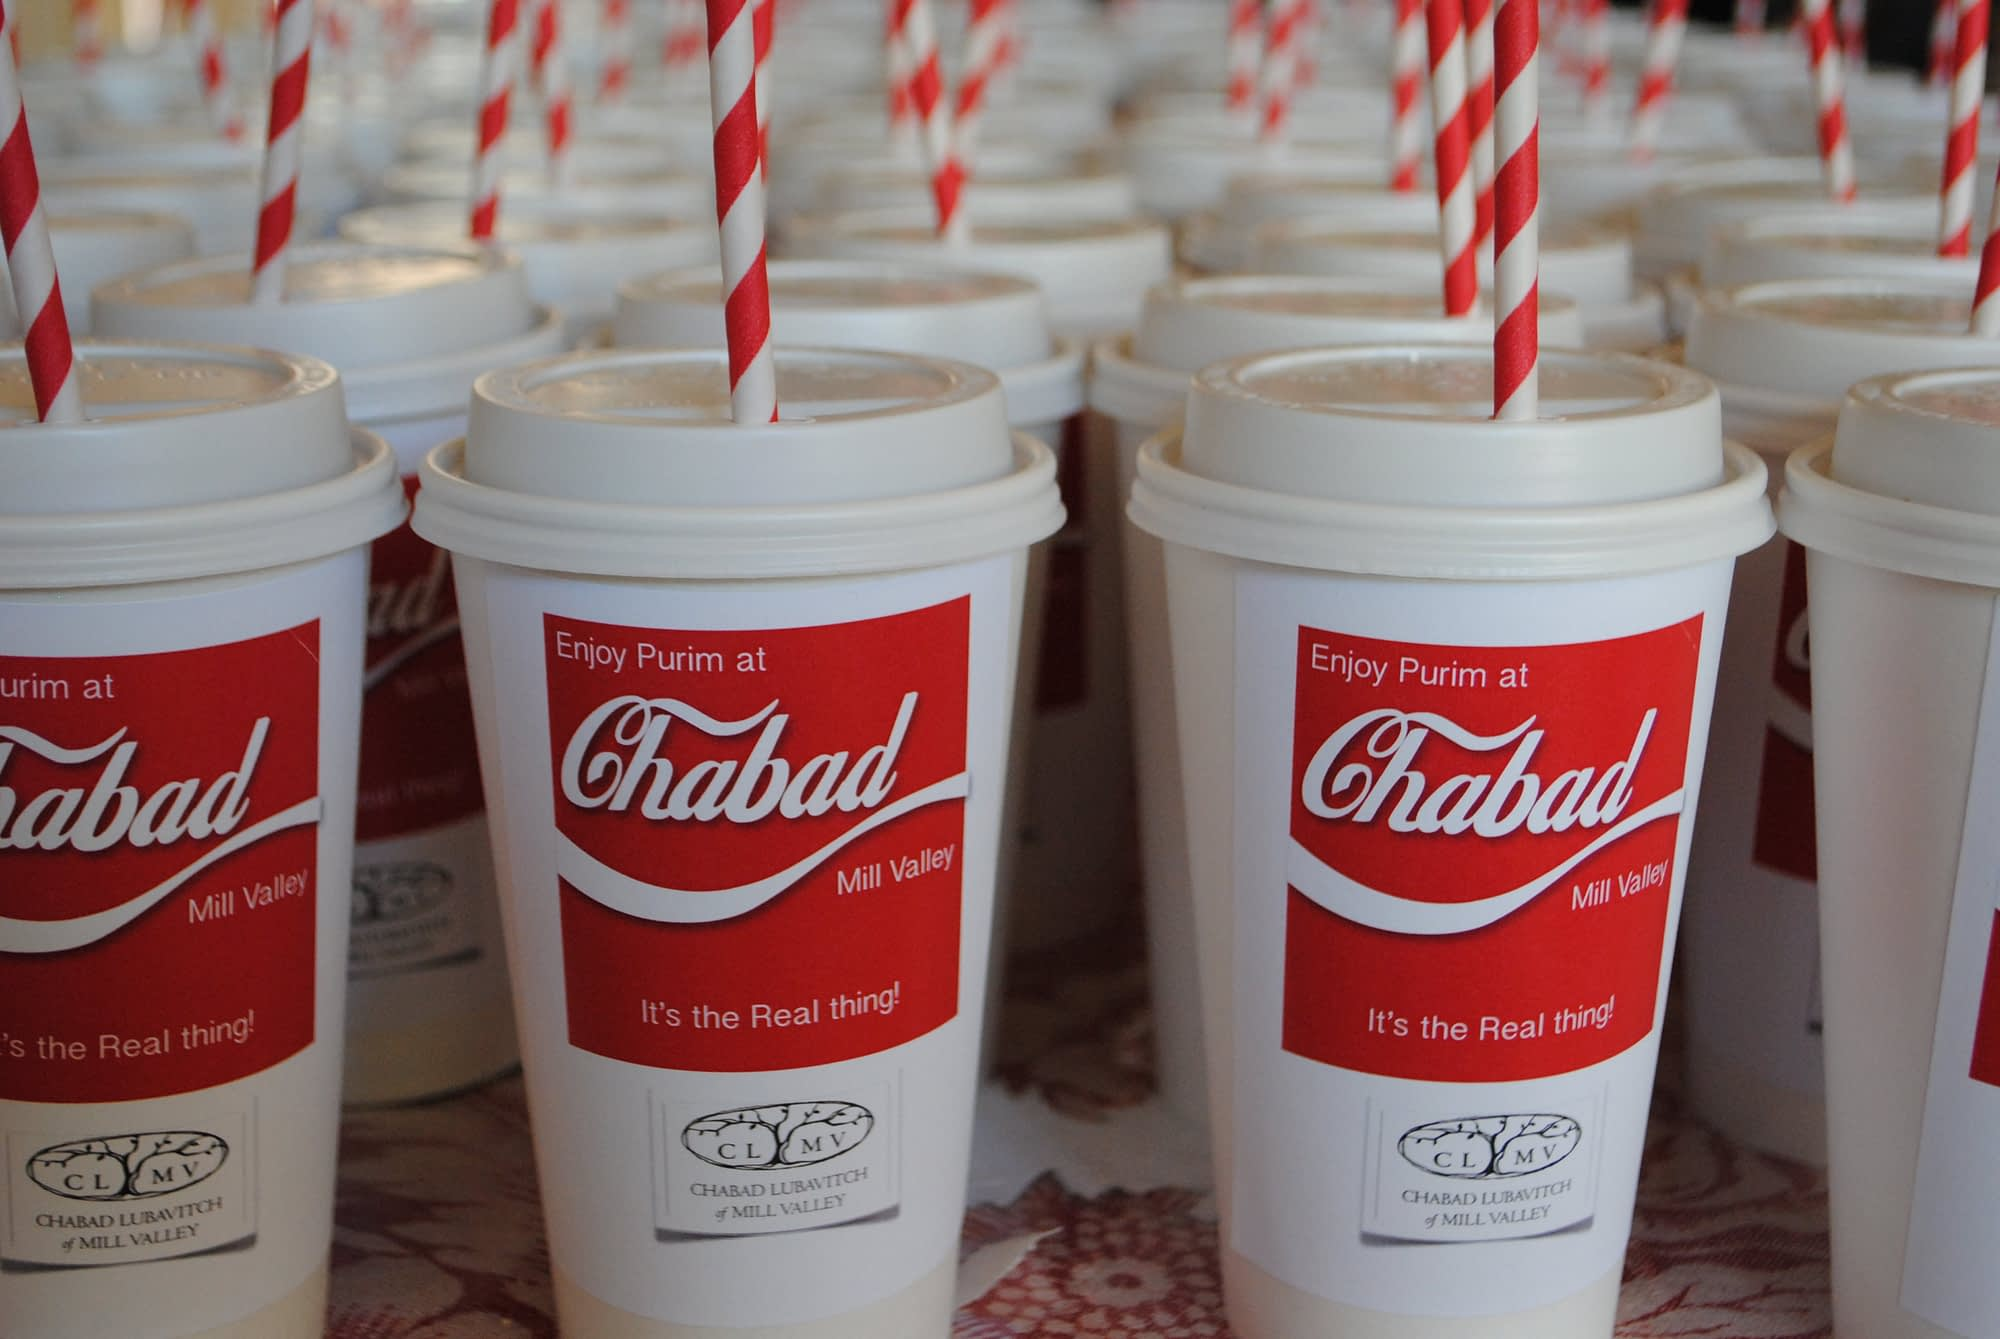 Ok, I had the most fun with these!! I bought plain paper white soda cups with lids and red and white striped straws.  I filled the cups with nosh, hamantashen etc. and stuck a mailing address on top which I designed and printed in color. These were so easy and just so fun!!